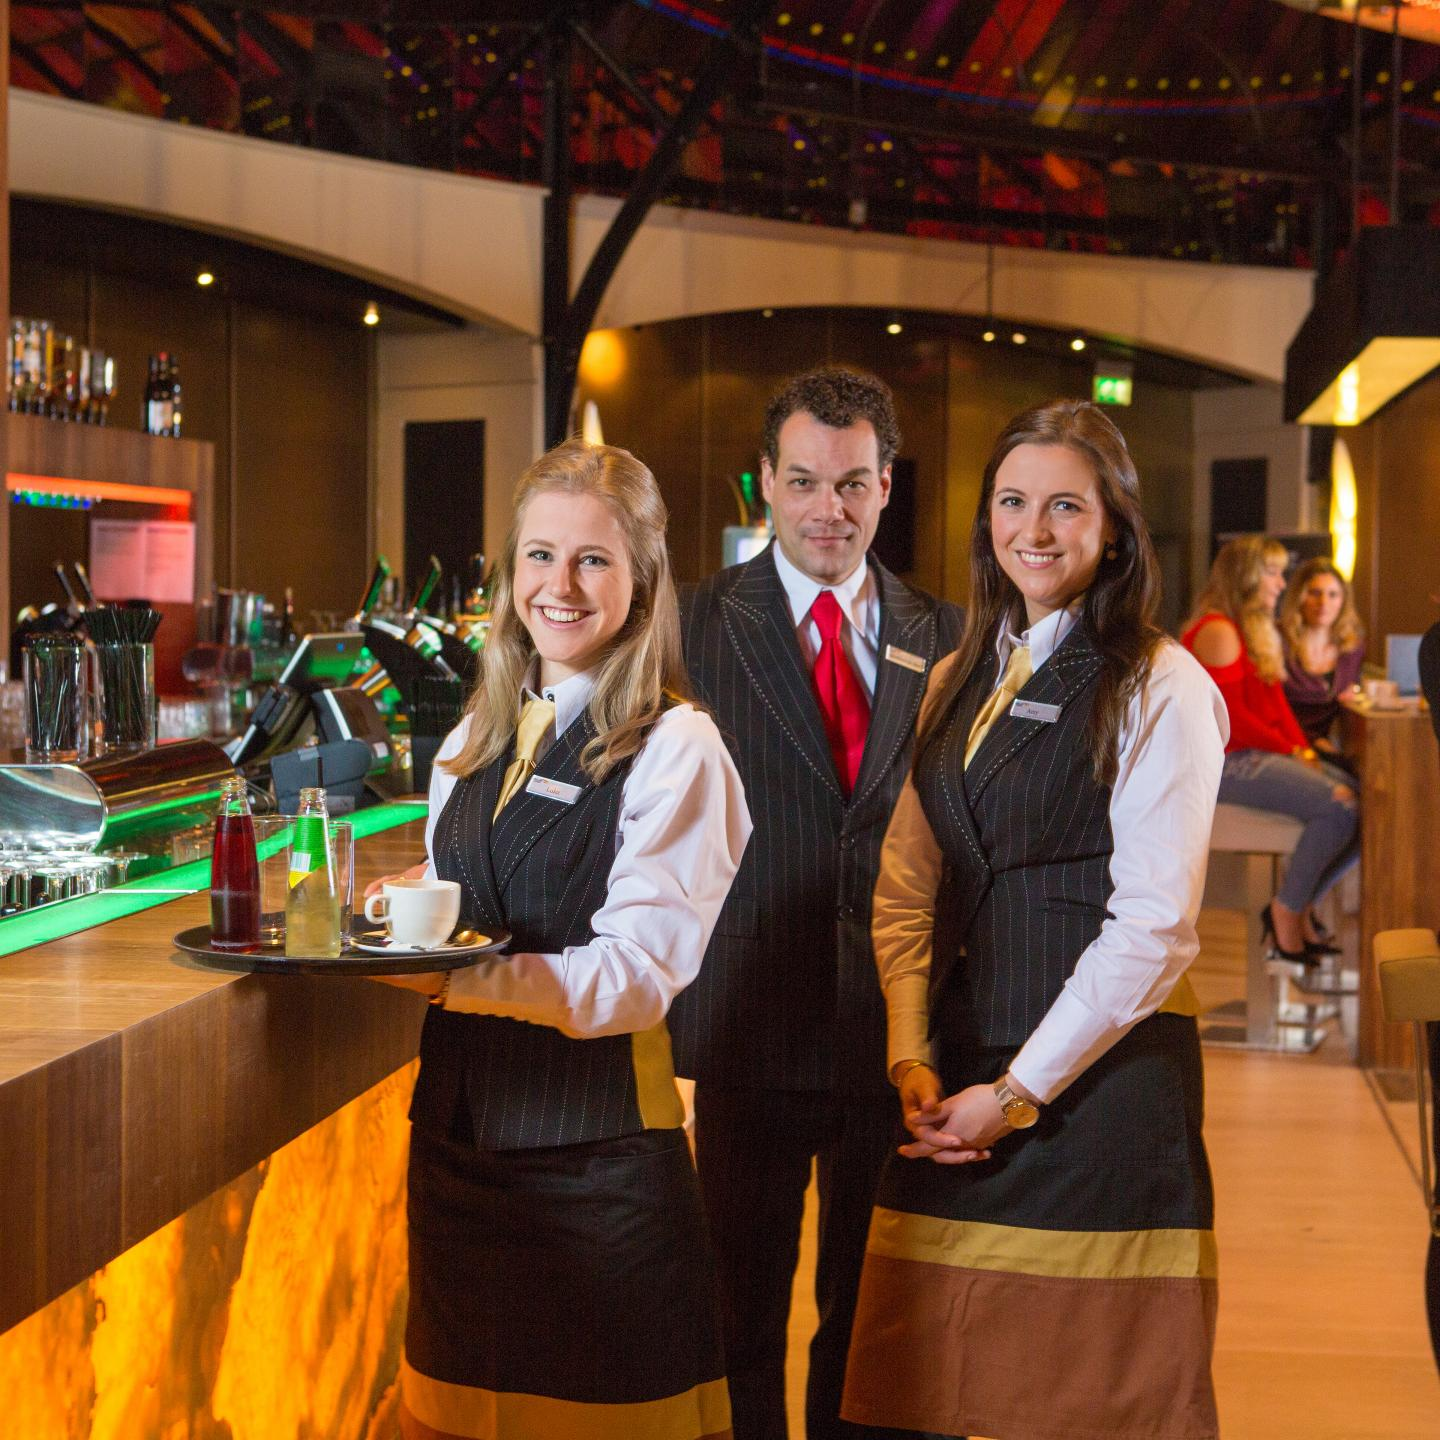 shiftleader f&b holland casino